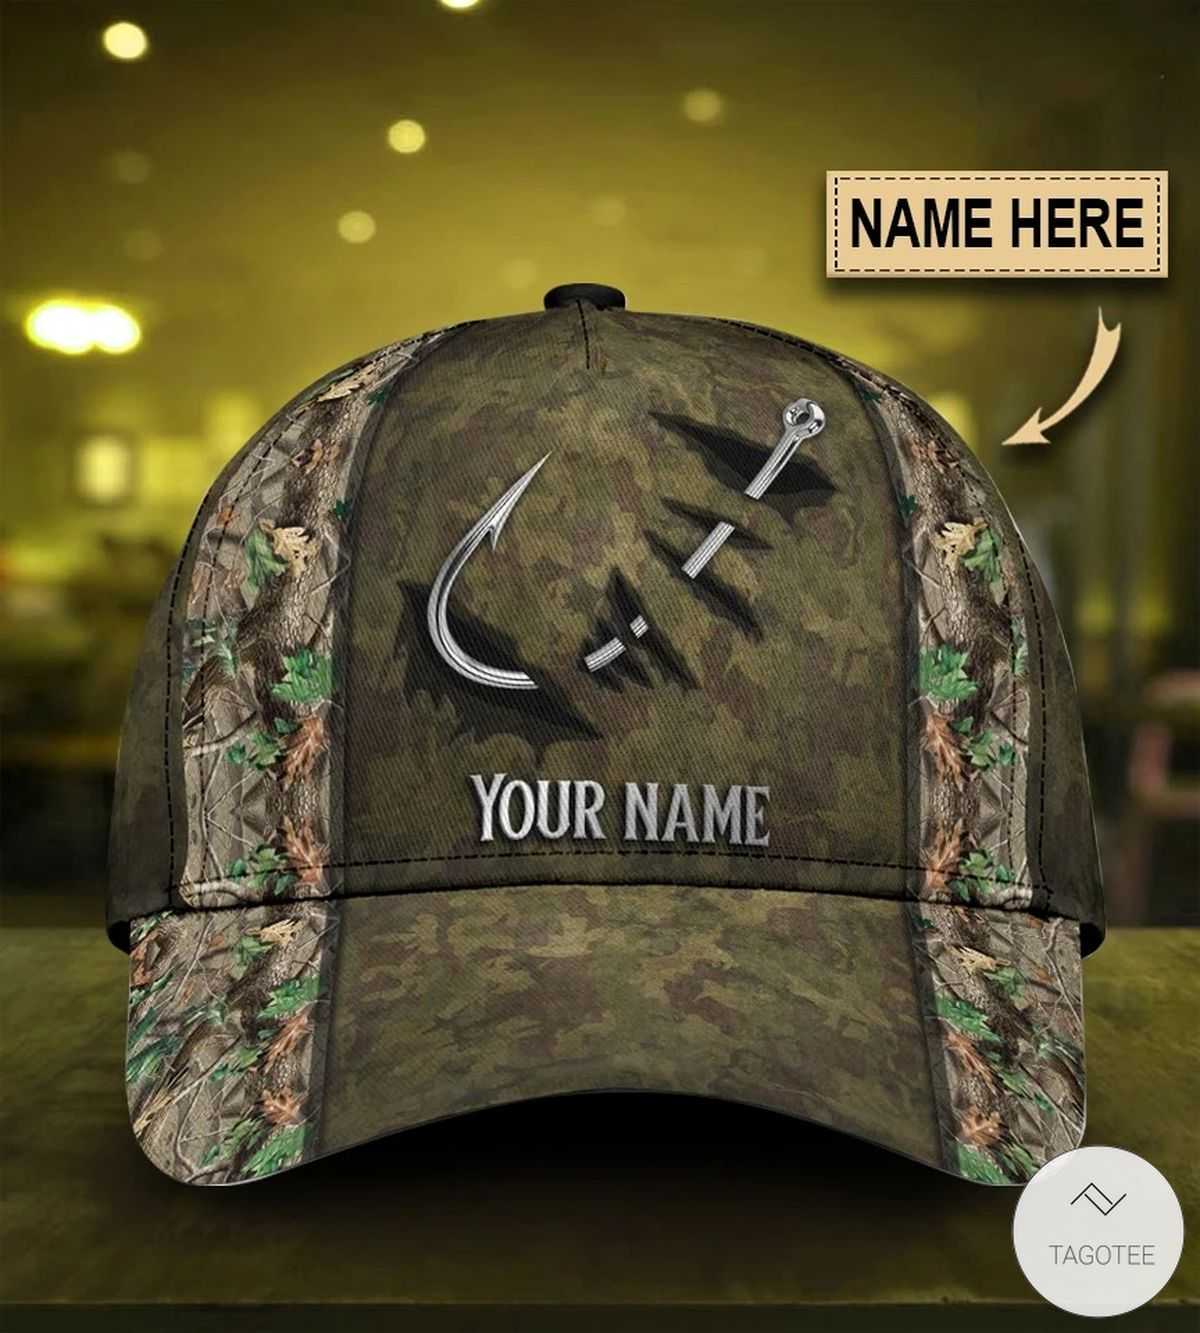 Personalized Camouflage Fishing Hook Cap   Tagotee